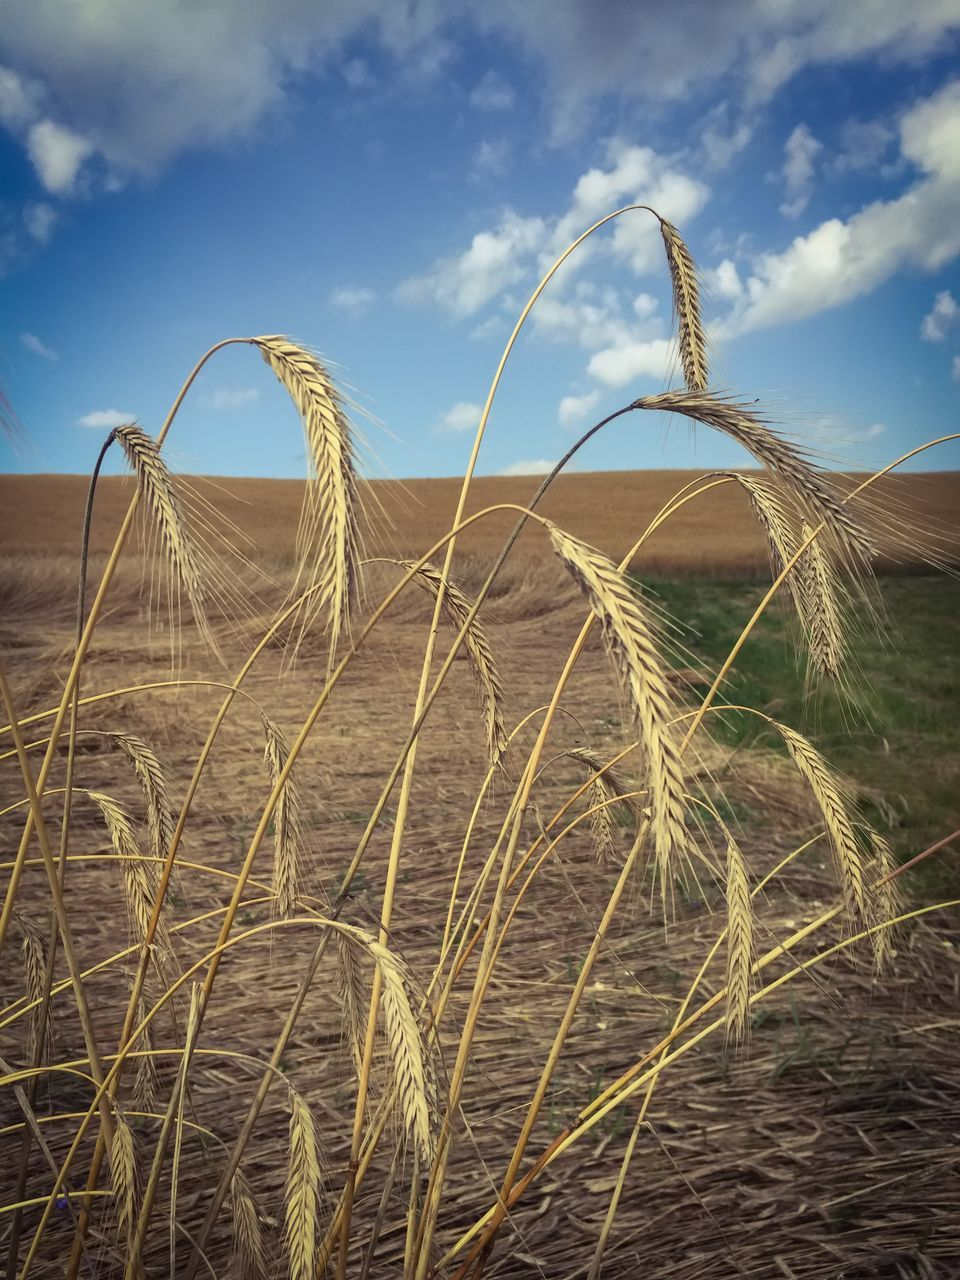 Dry Plants On Field Against Sky